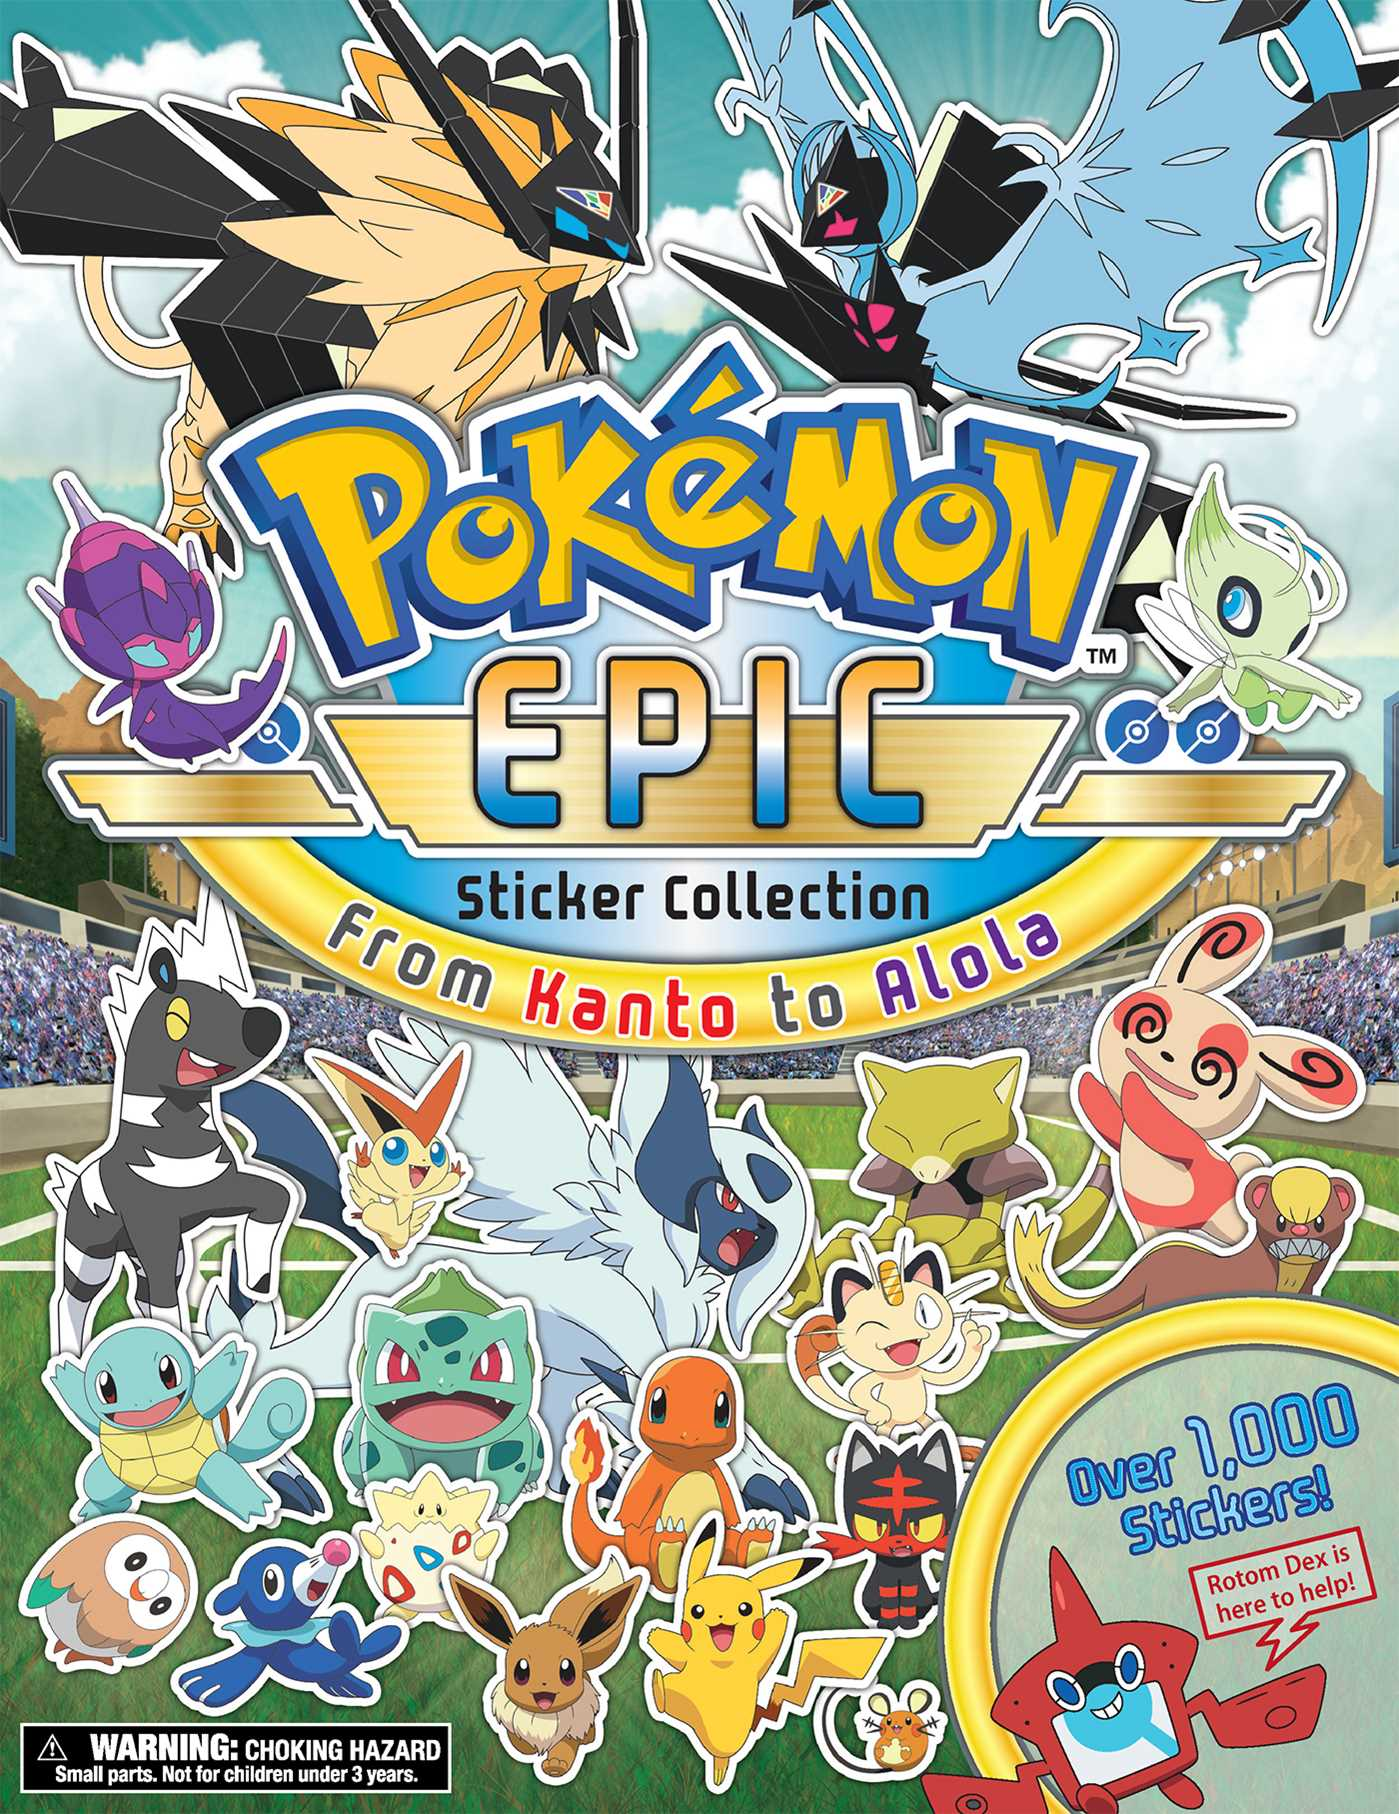 pokémon epic sticker collection from kanto to alola book by